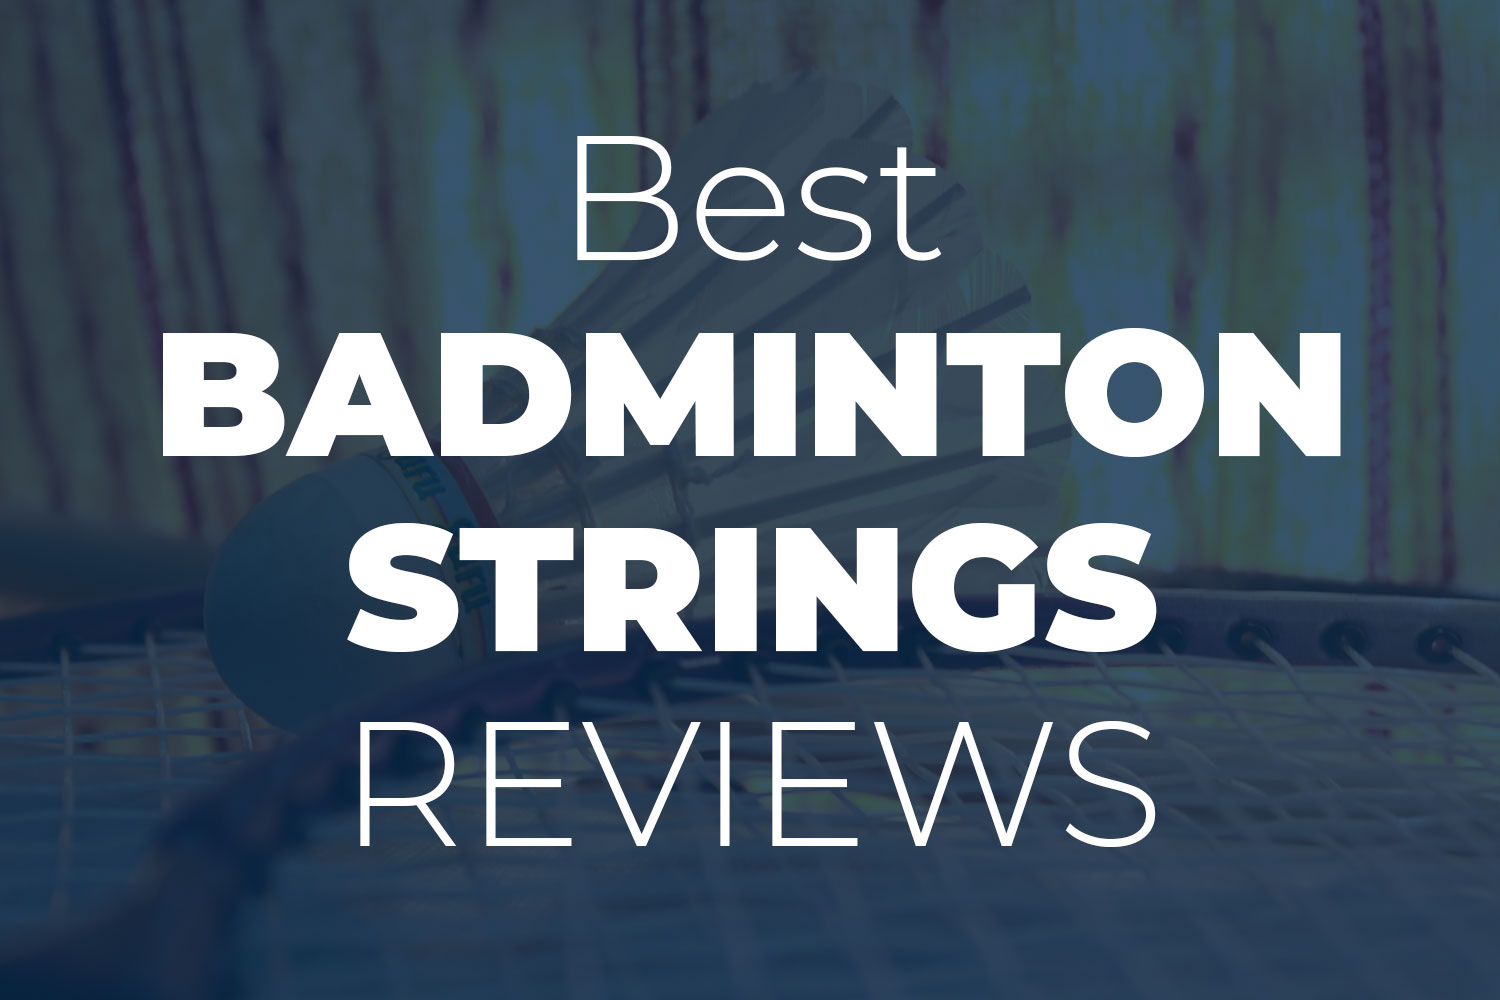 Best Badminton Strings Reviews